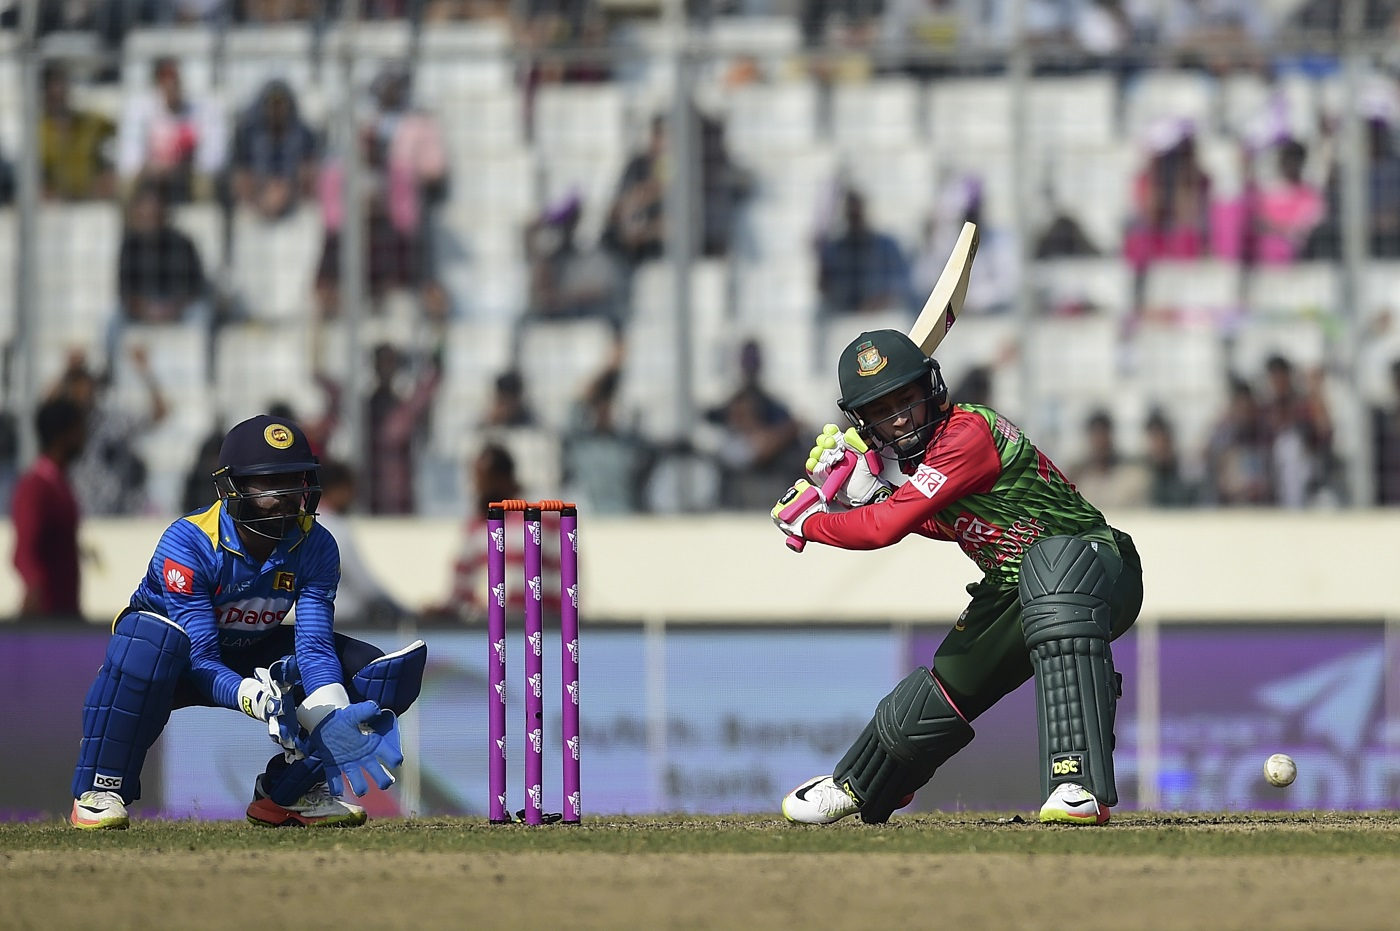 Sri Lanka vs Bangladesh 3rd ODI Highlights